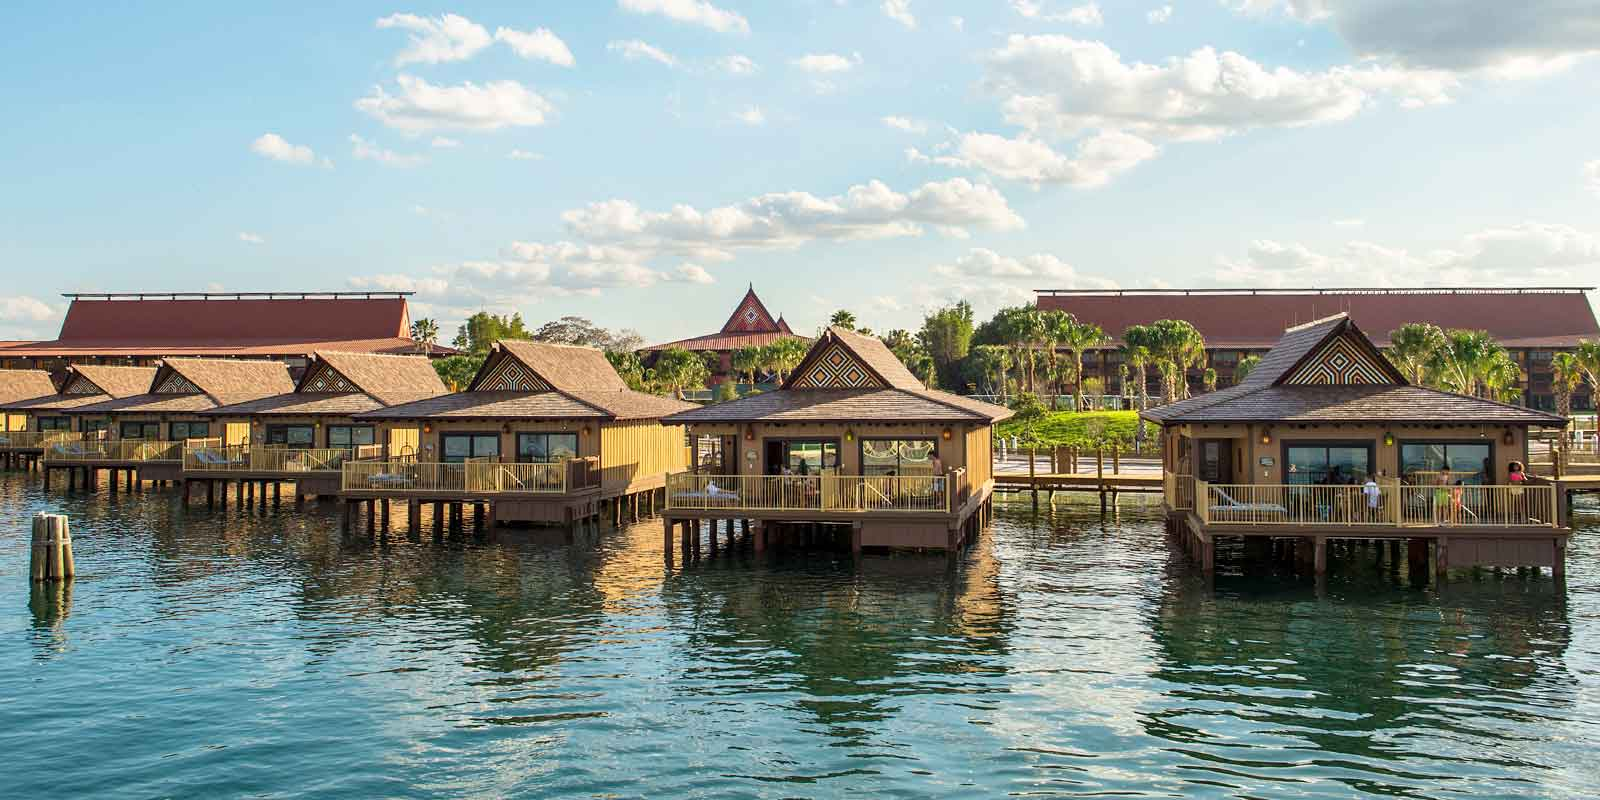 Landscape view of a row of Polynesian-style overwater villas at Disney World.